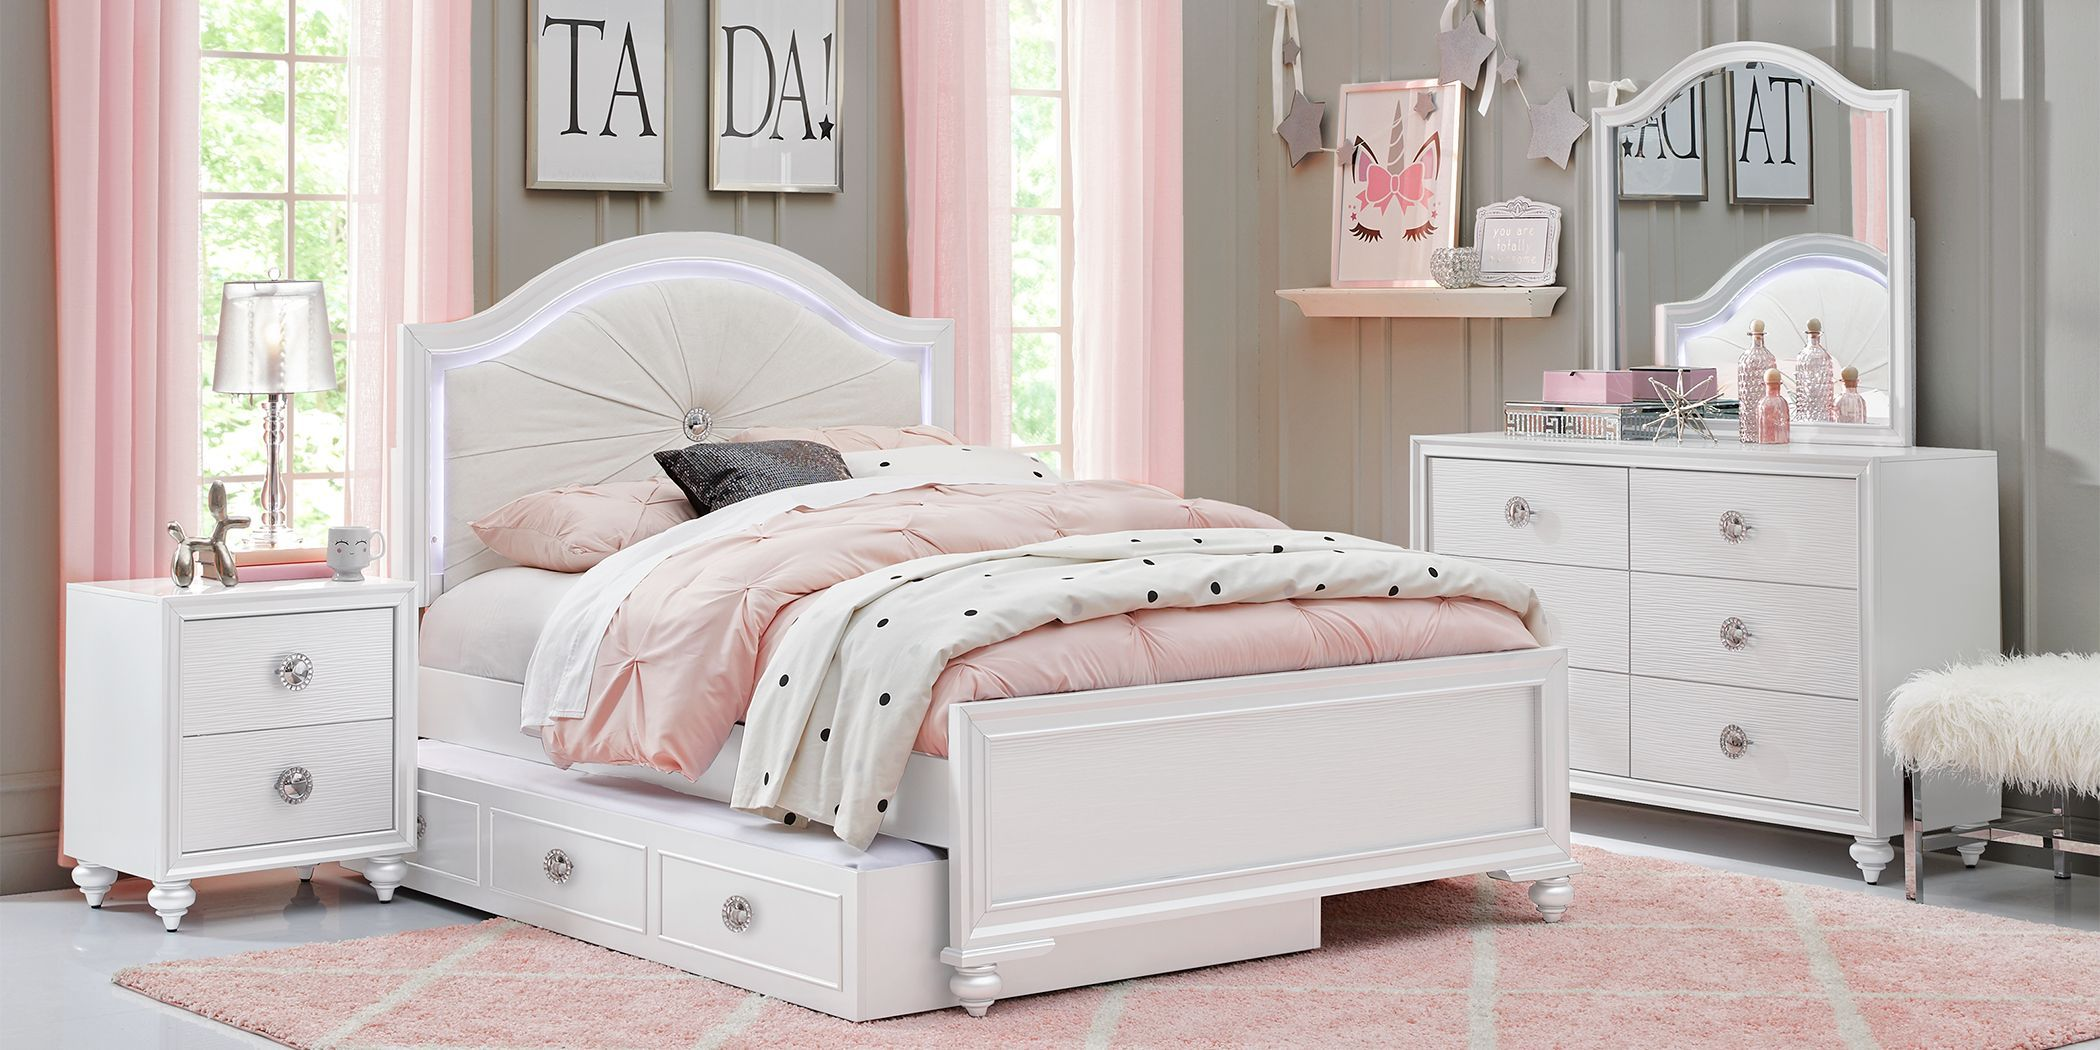 Pin on Favorite Beds